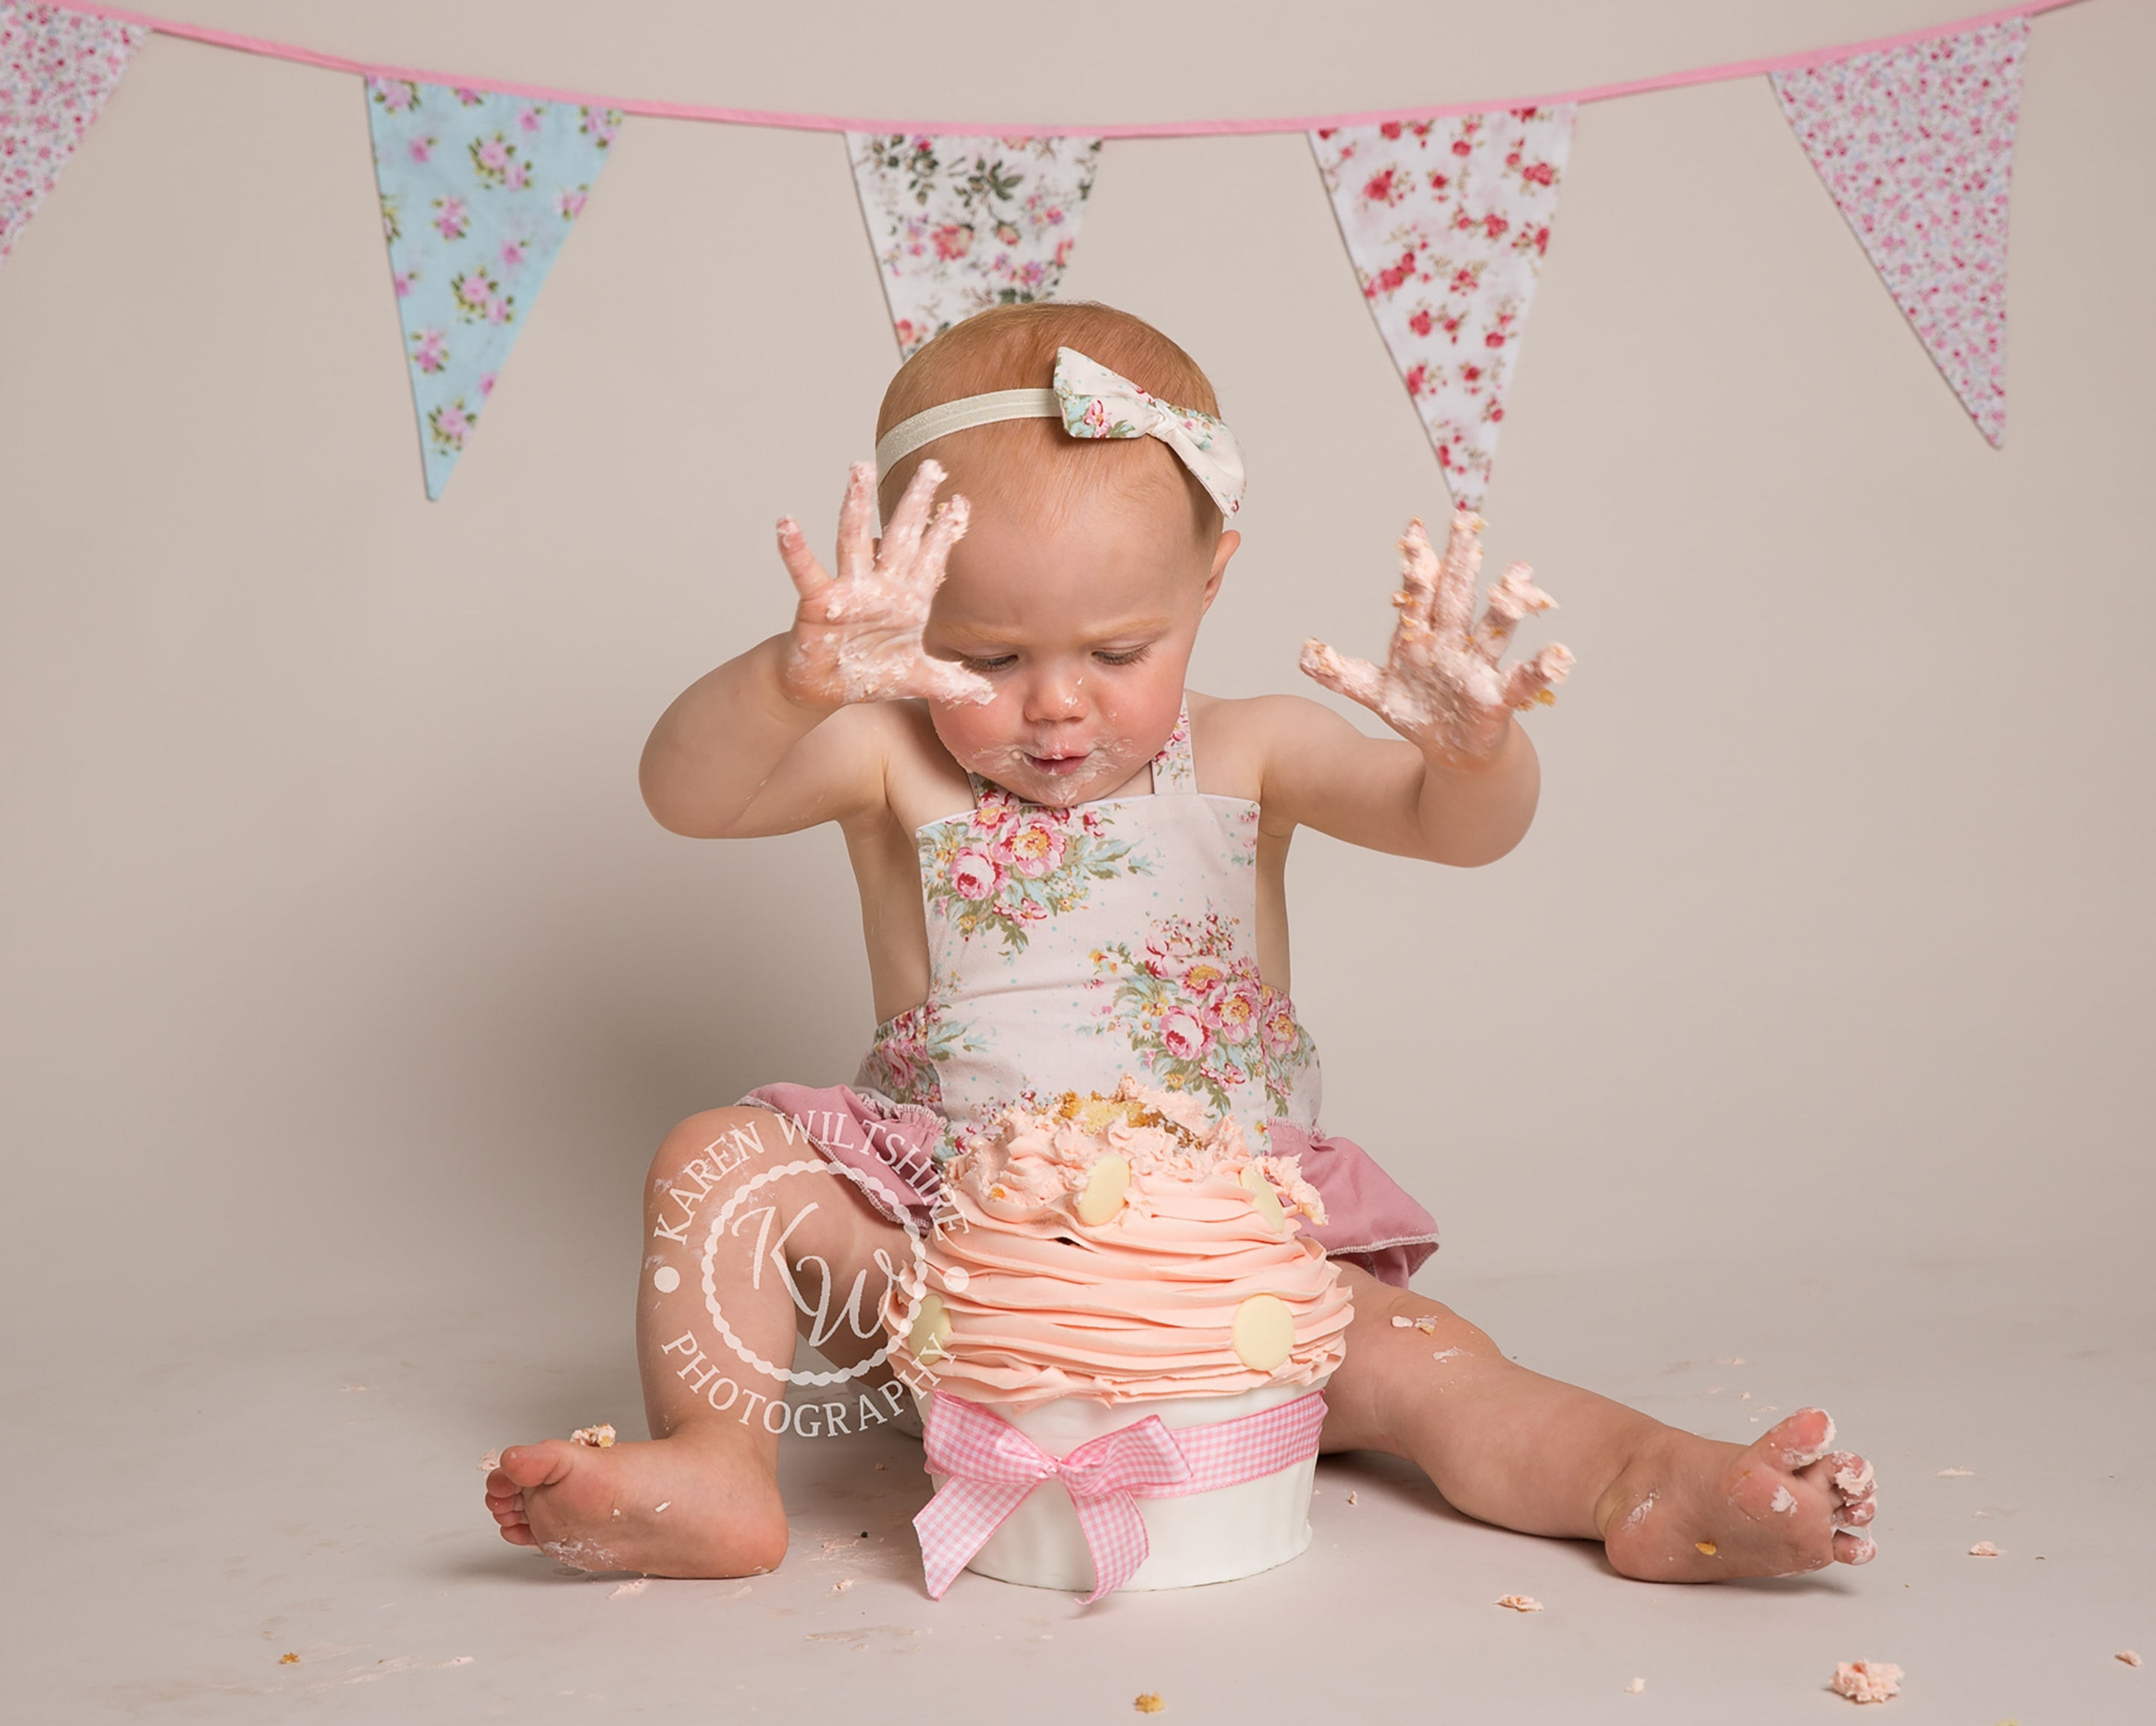 baby girl plunges hands into a giant cup cake